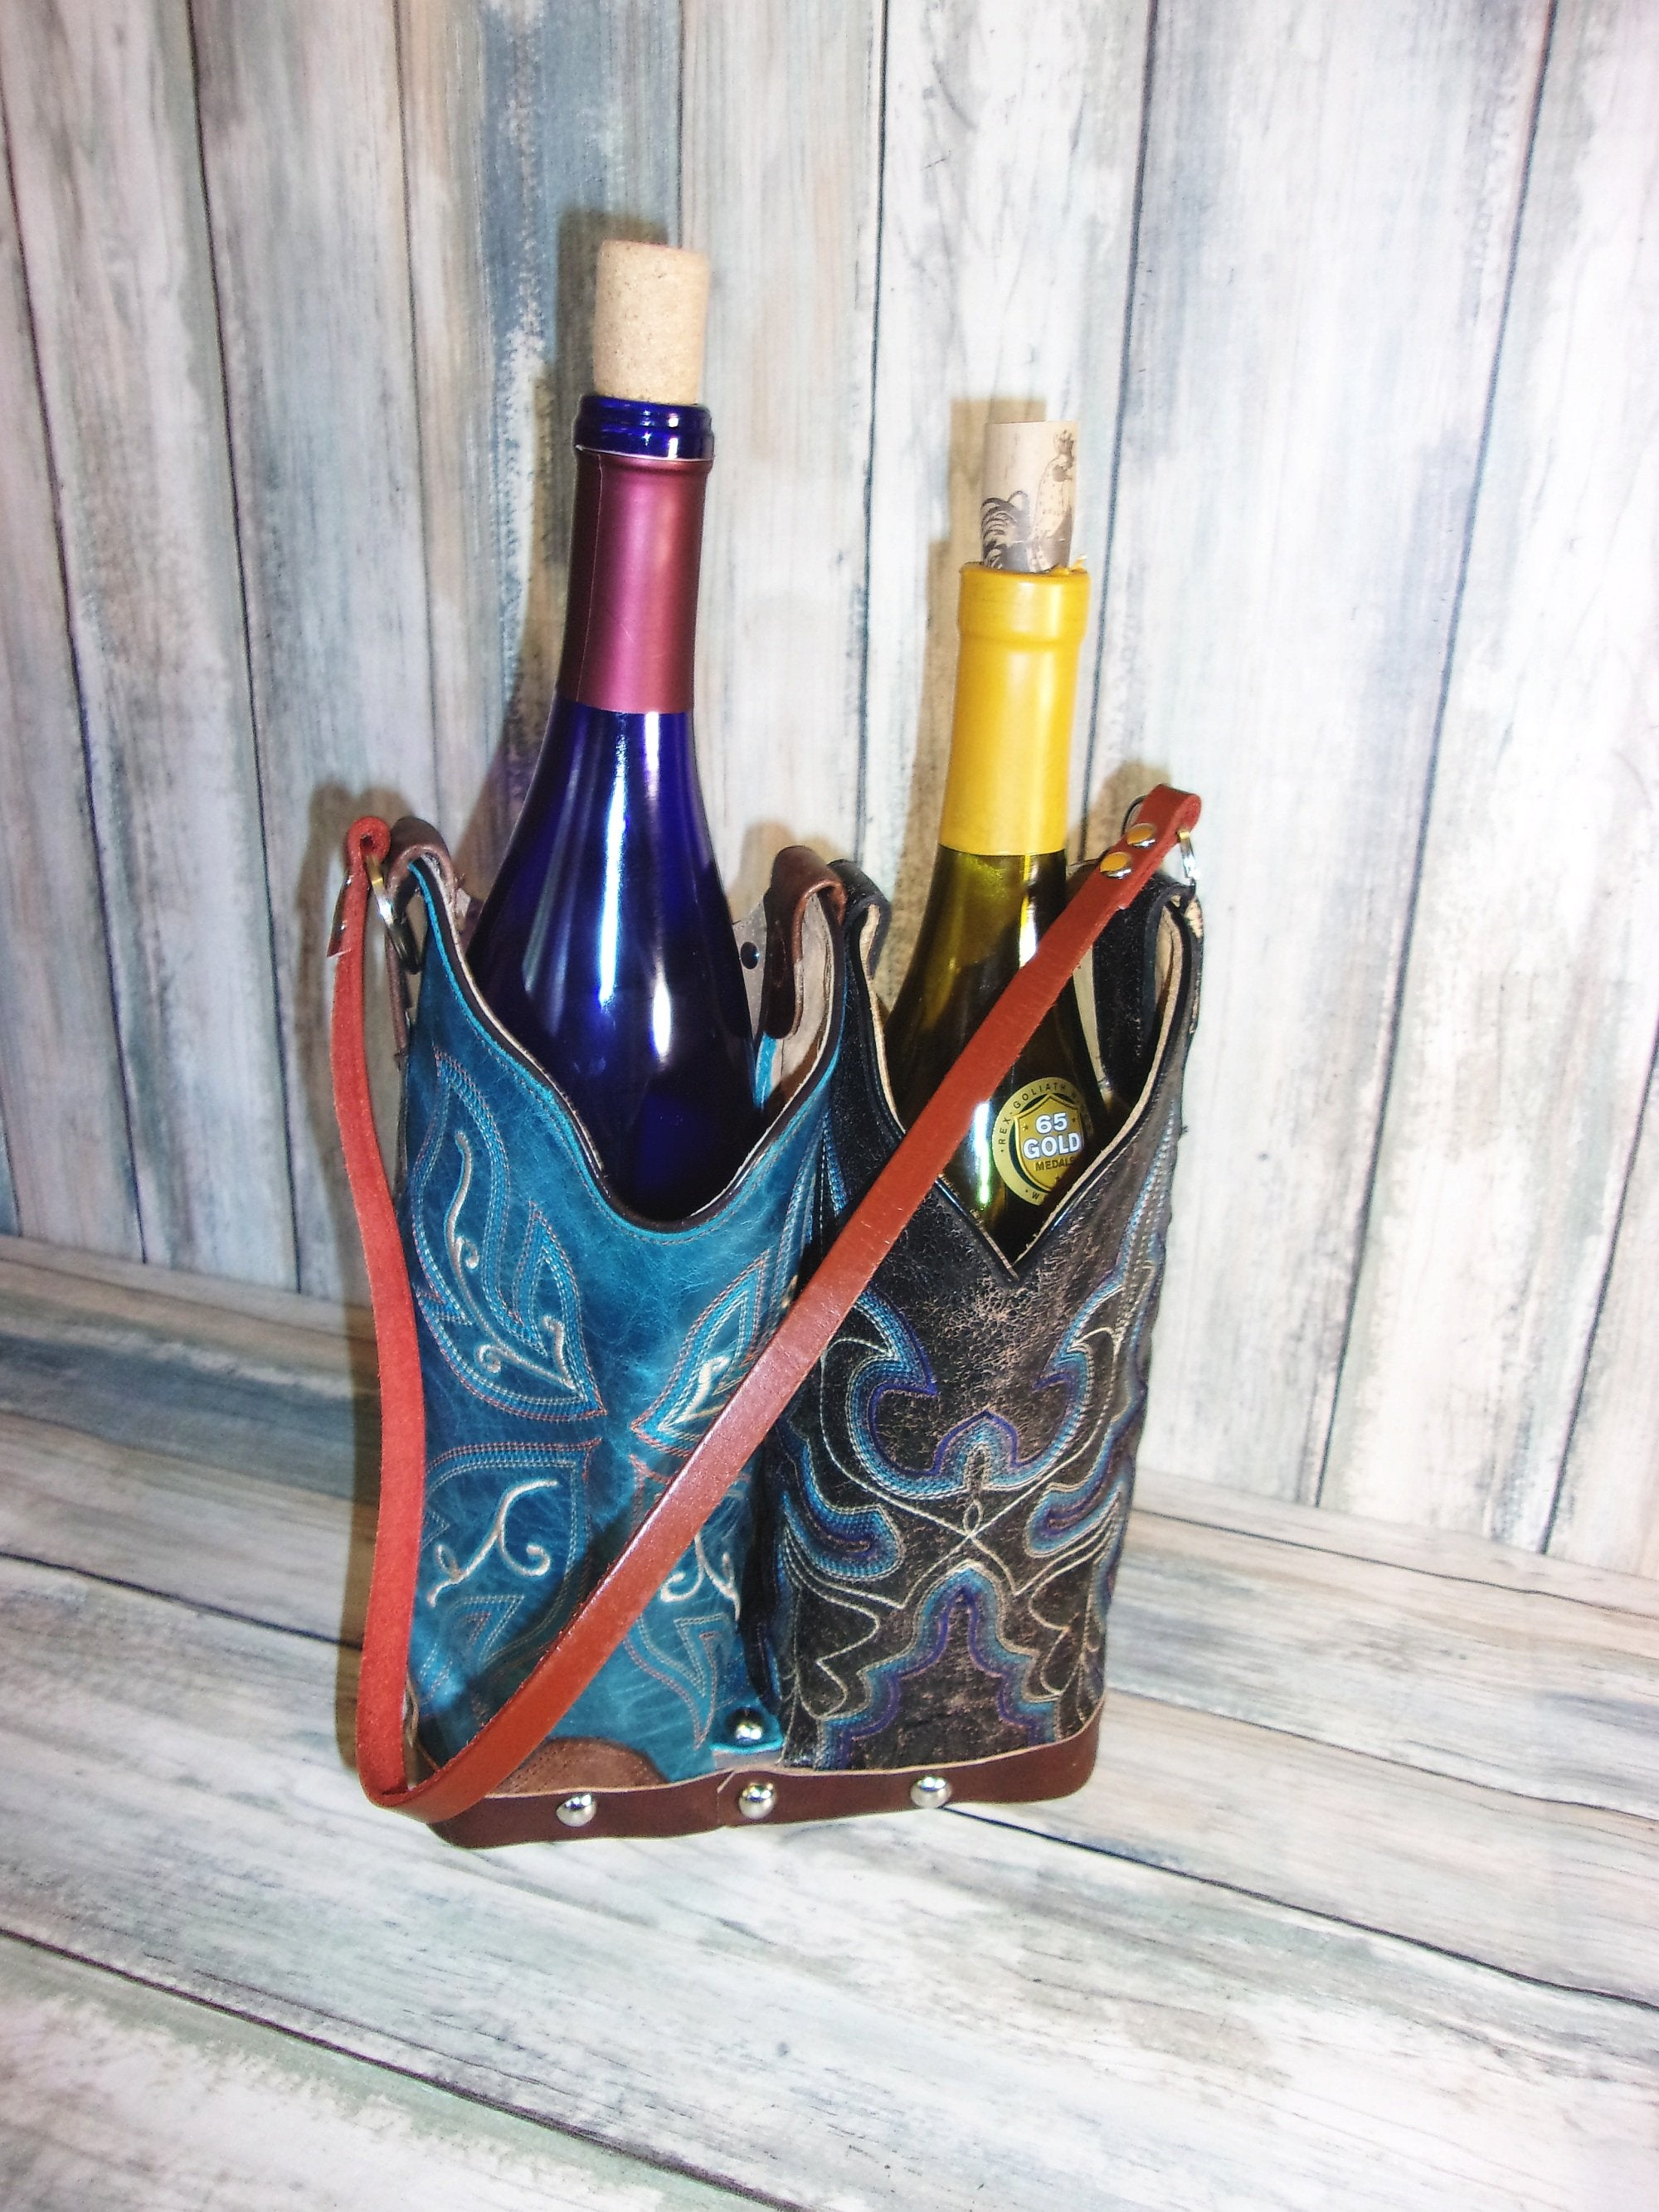 Double Cowboy Boot Leather Wine Tote PP41 - Distinctive Western Handbags, Purses and Totes